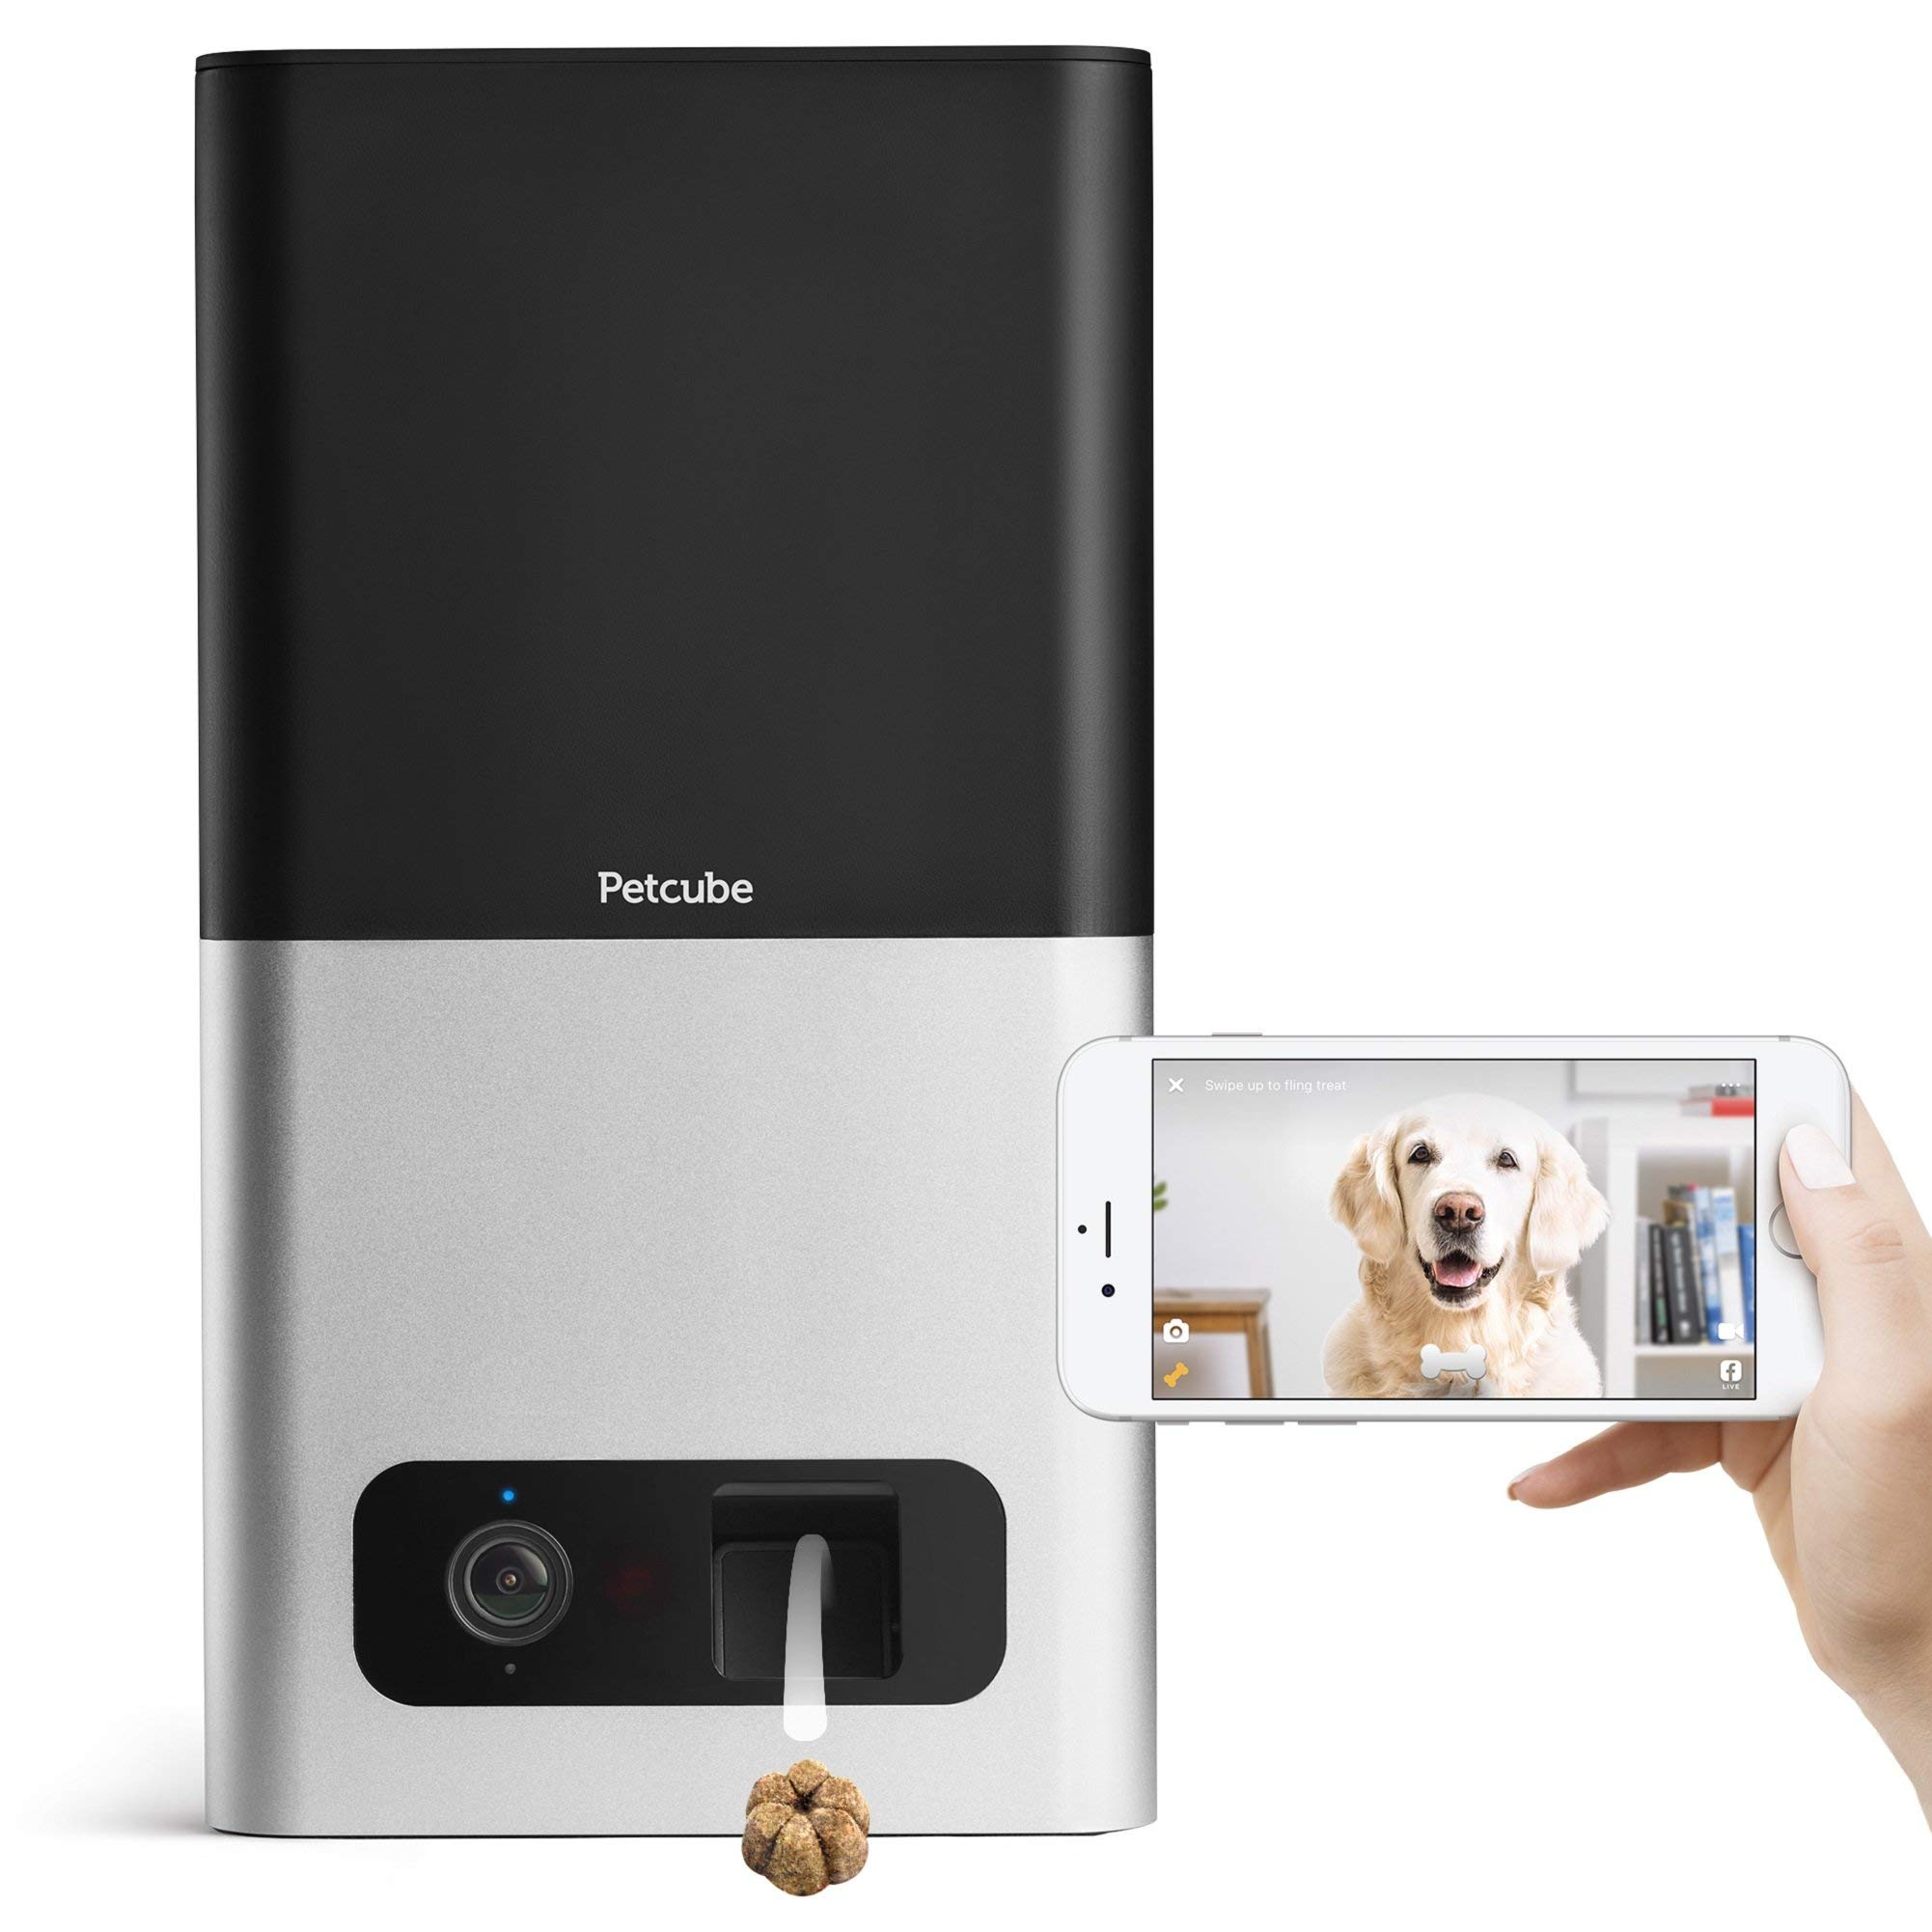 Petcube Bites Pet Camera with Treat Dispenser, HD 1080p Video, Two-Way Audio, Night Vision, Sound and Motion Alerts. Dogs and Cats. Compatible with Alexa. (Renewed) by Petcube